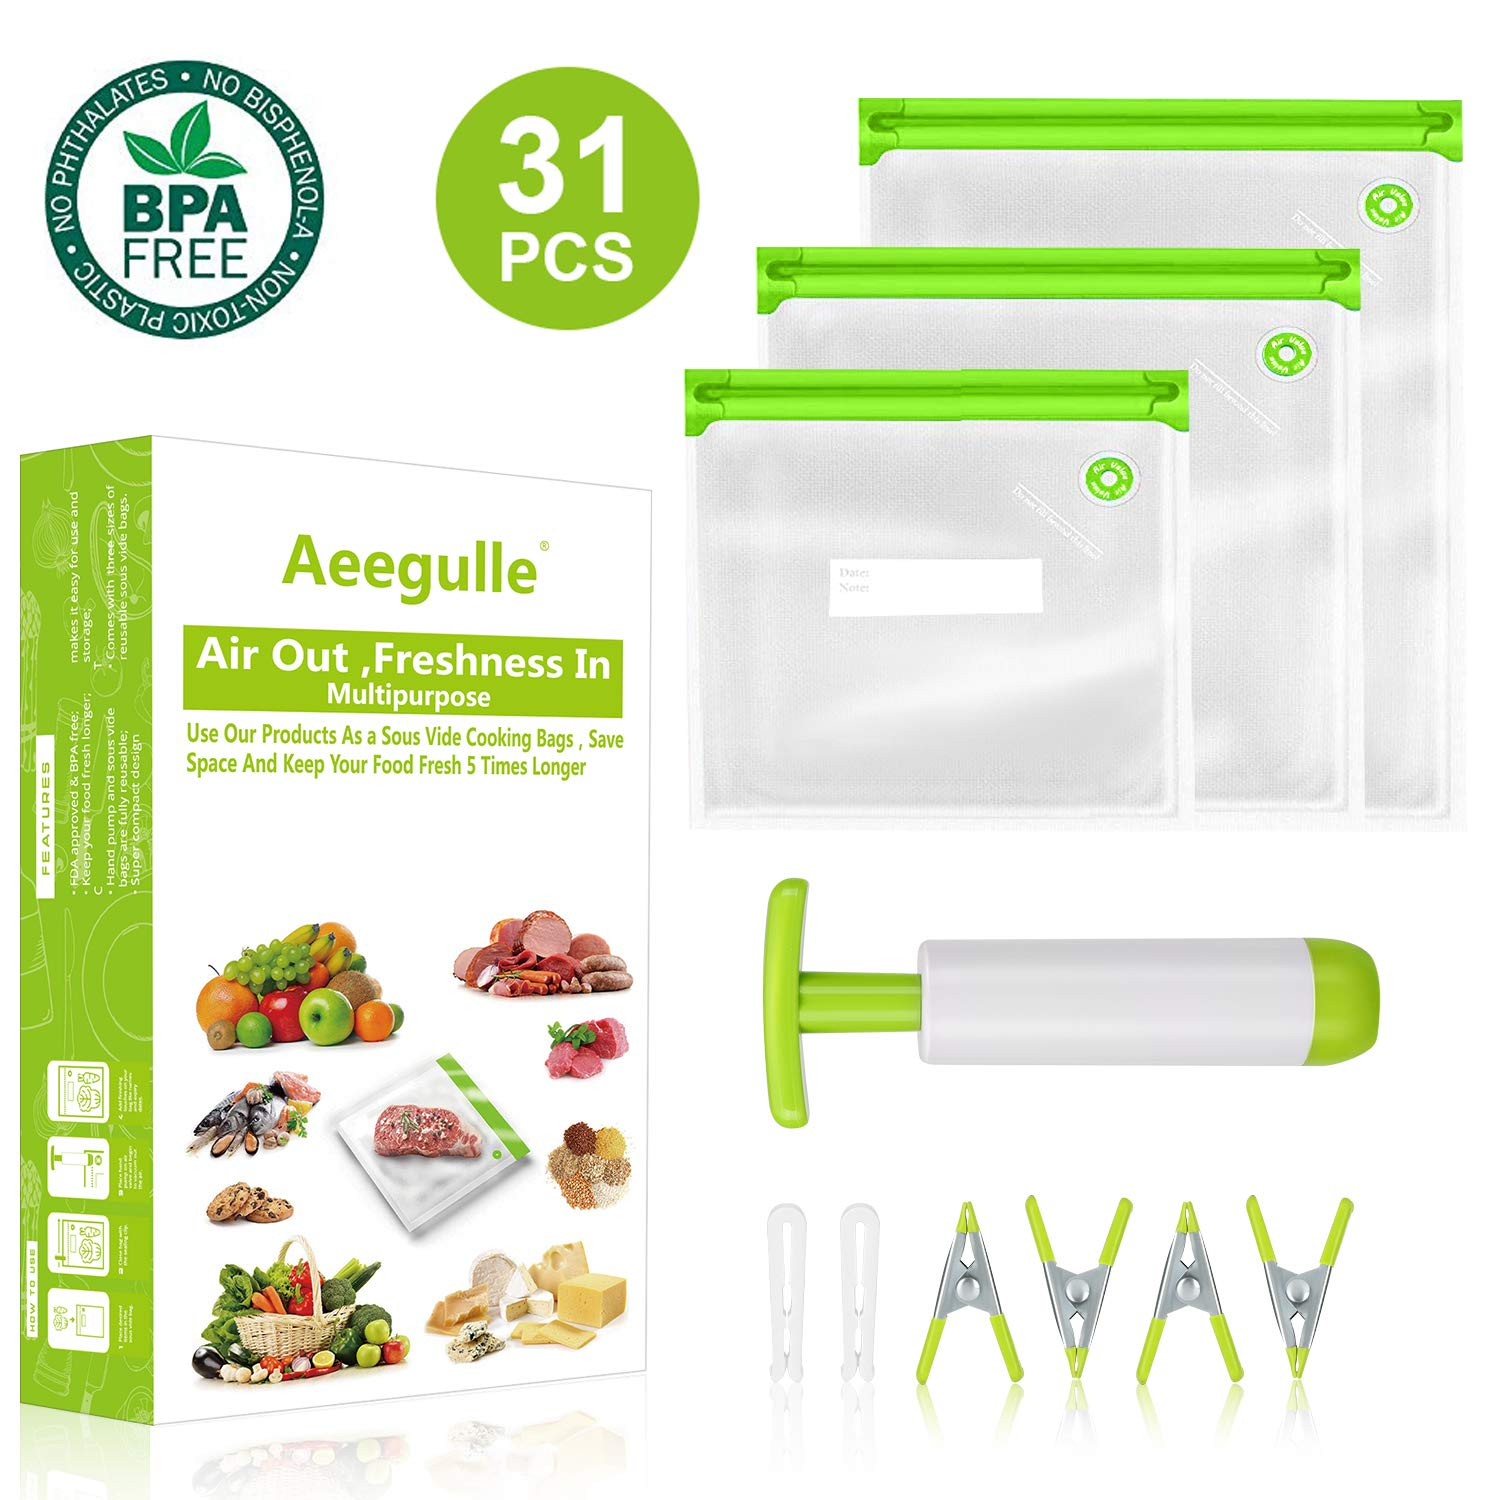 Sous Vide Bags, 24 Reusable Food Vacuum Sealed Bags, 1Improved vacuum hand pump, 2 Bag Sealing Clips and 4 Sous Vide Clips, For Anova and Joule Cookers | Practical for Food Storage | More Space Saving | Food Storage Freezer Safe (31PCS) (Green) by Aeegulle